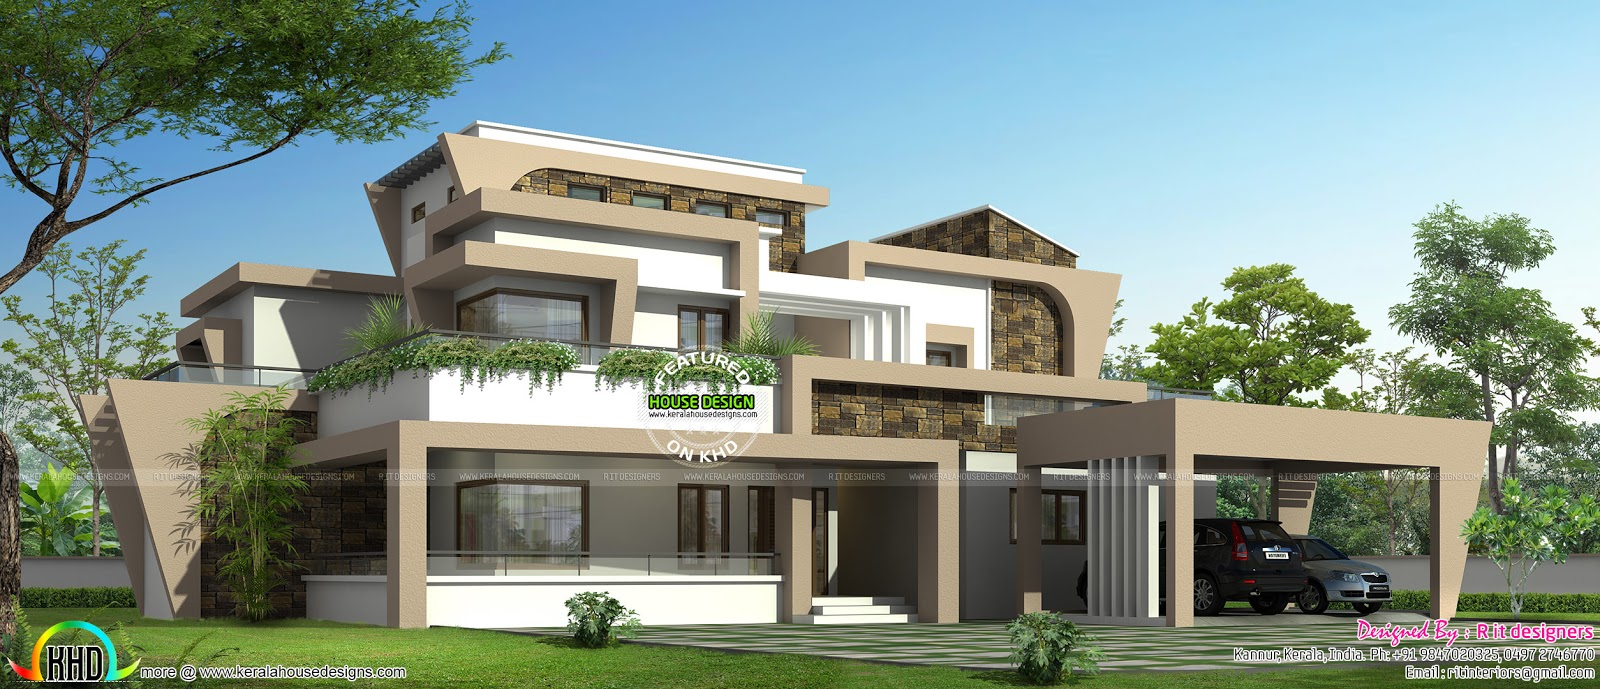 Unique modern home design in kerala kerala home design for Unique house plans